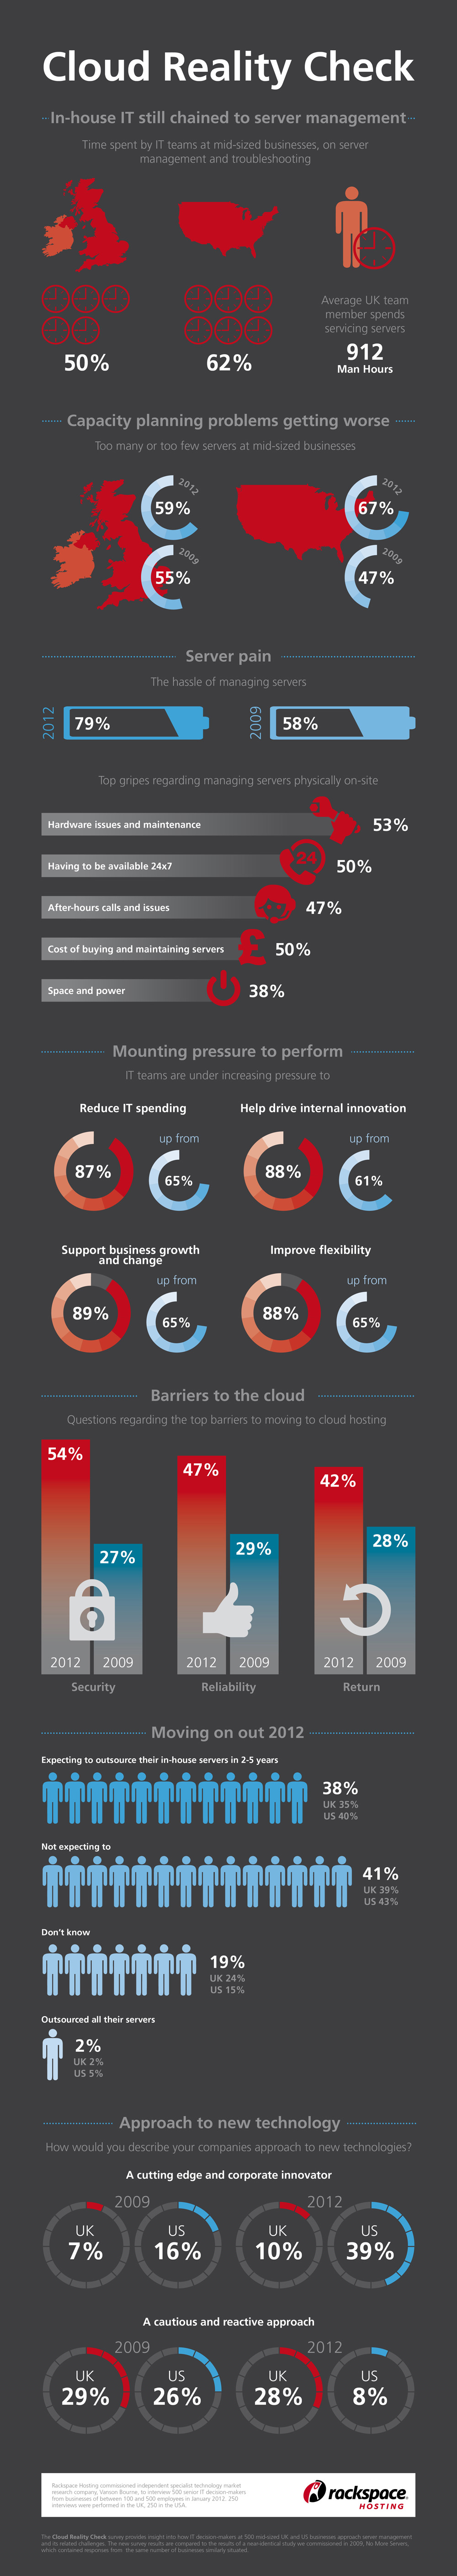 Rackspace-Cloud-Reality-Check-v4.jpg